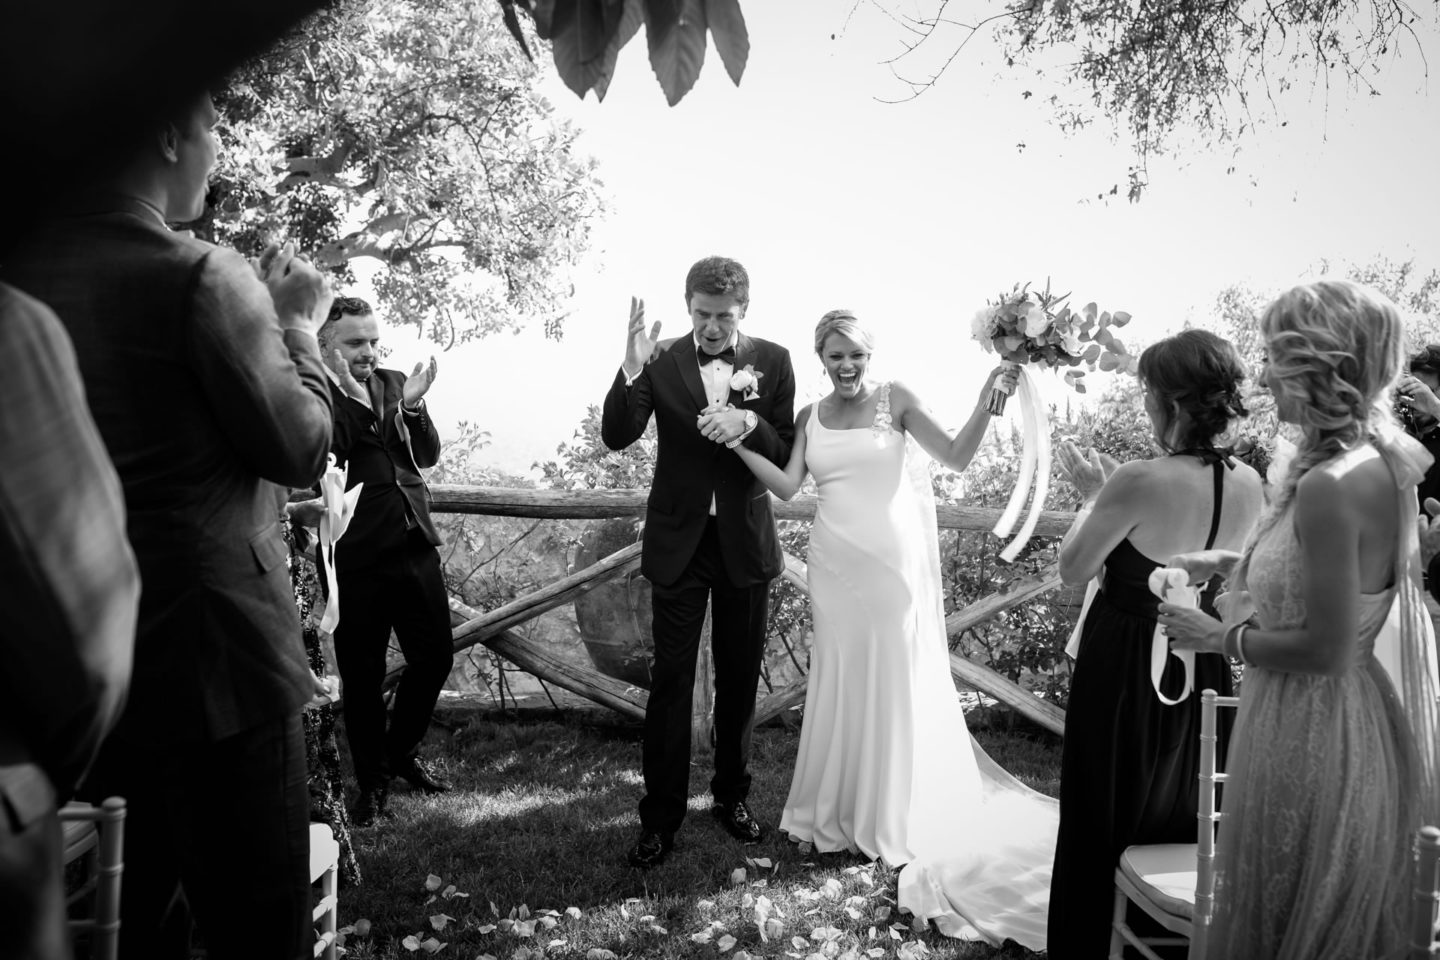 Best Wishes :: Wedding in Positano. Sea and love :: Luxury wedding photography - 27 :: Best Wishes